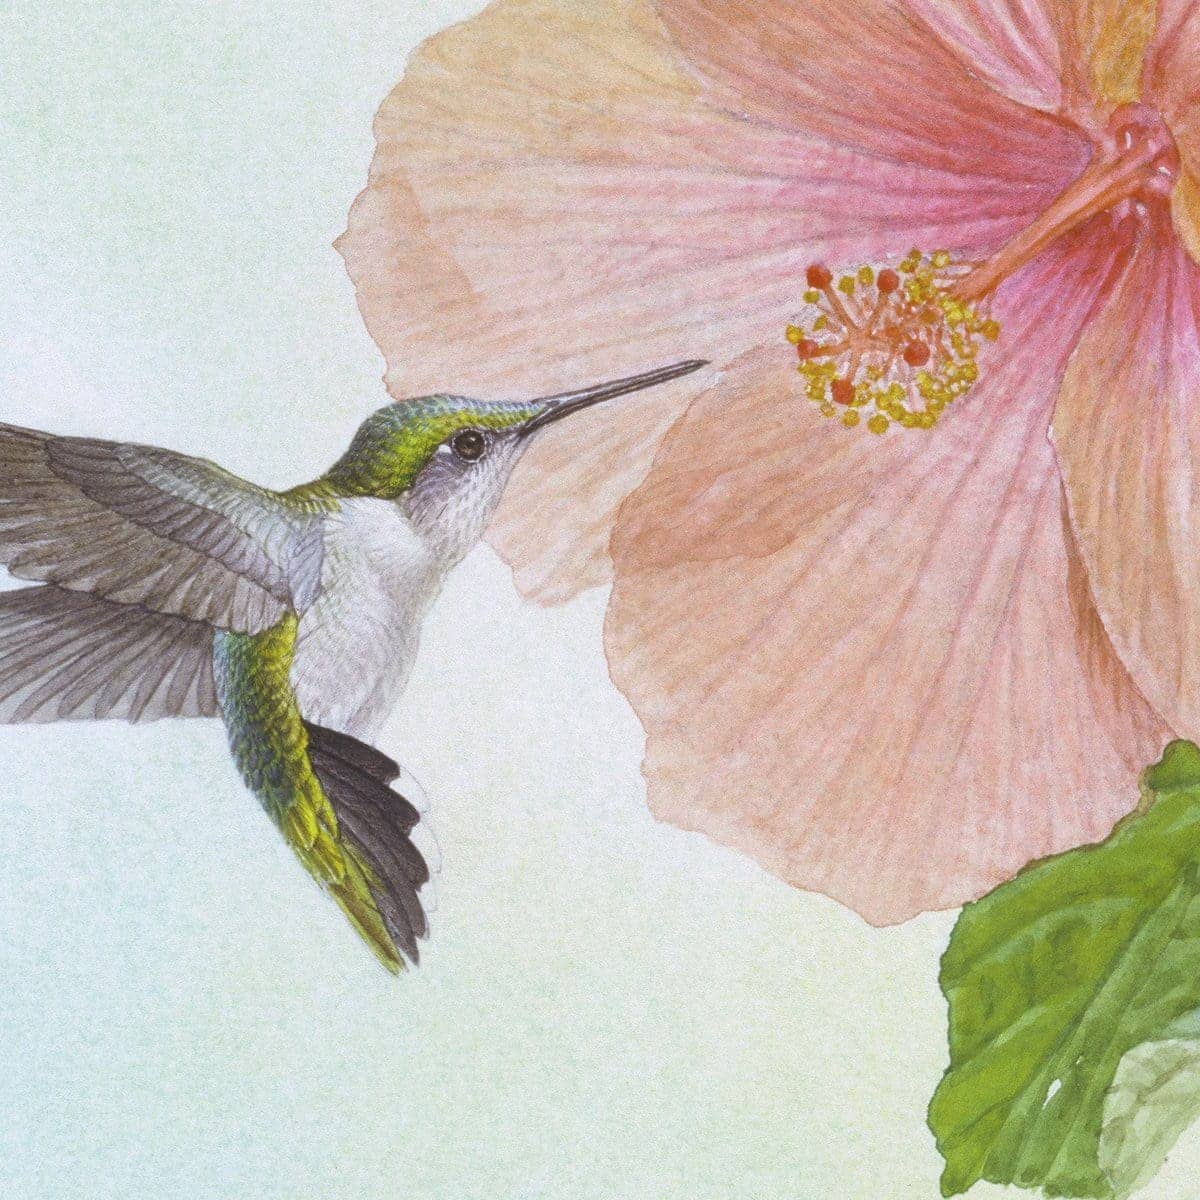 Hummingbirds And Hibiscus - Art Print by Glen Loates from the Glen Loates Store